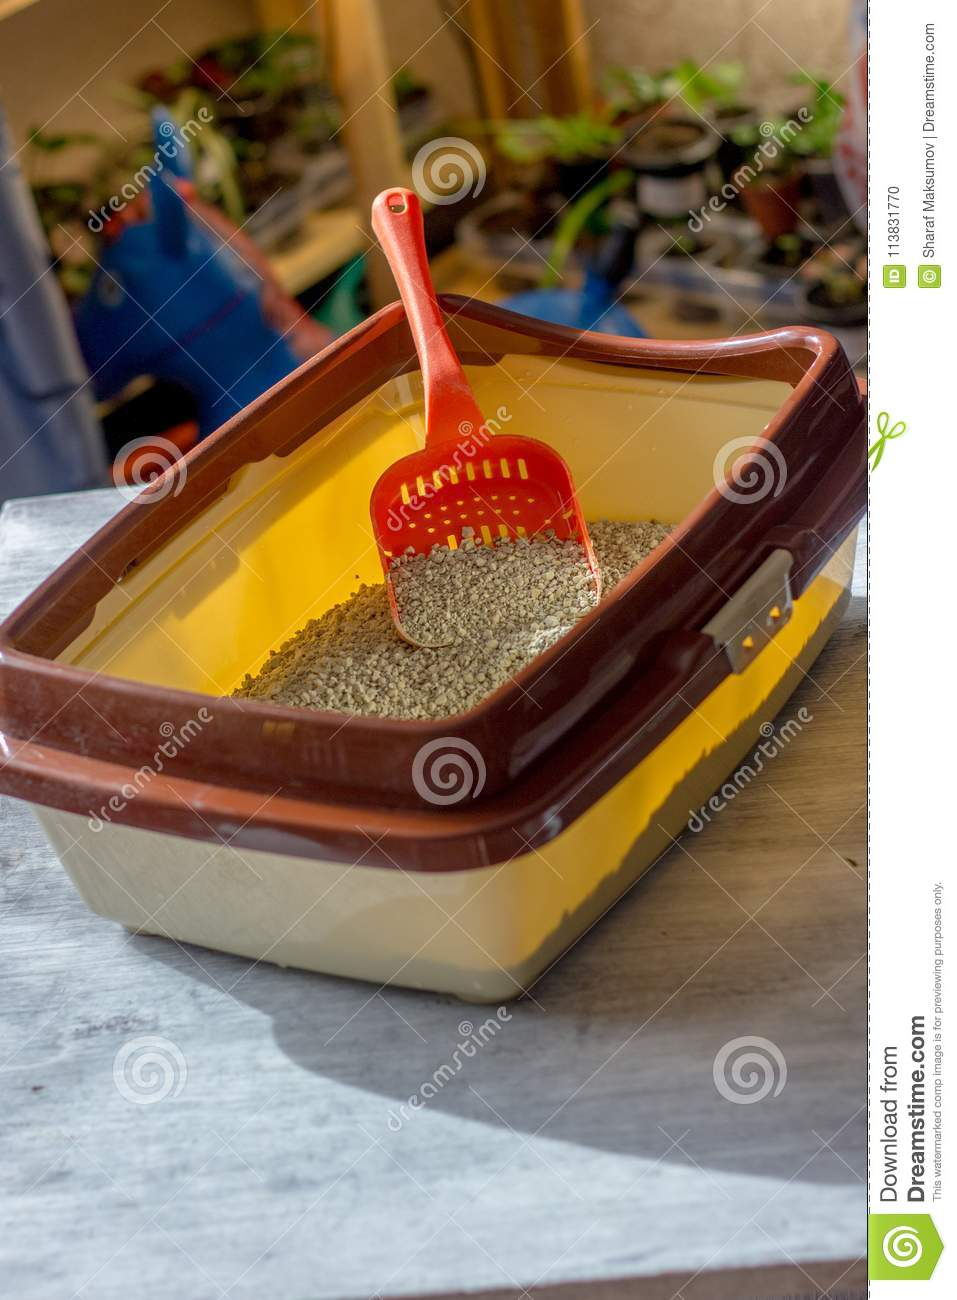 Red plastic scoop with the cat litter in a box.